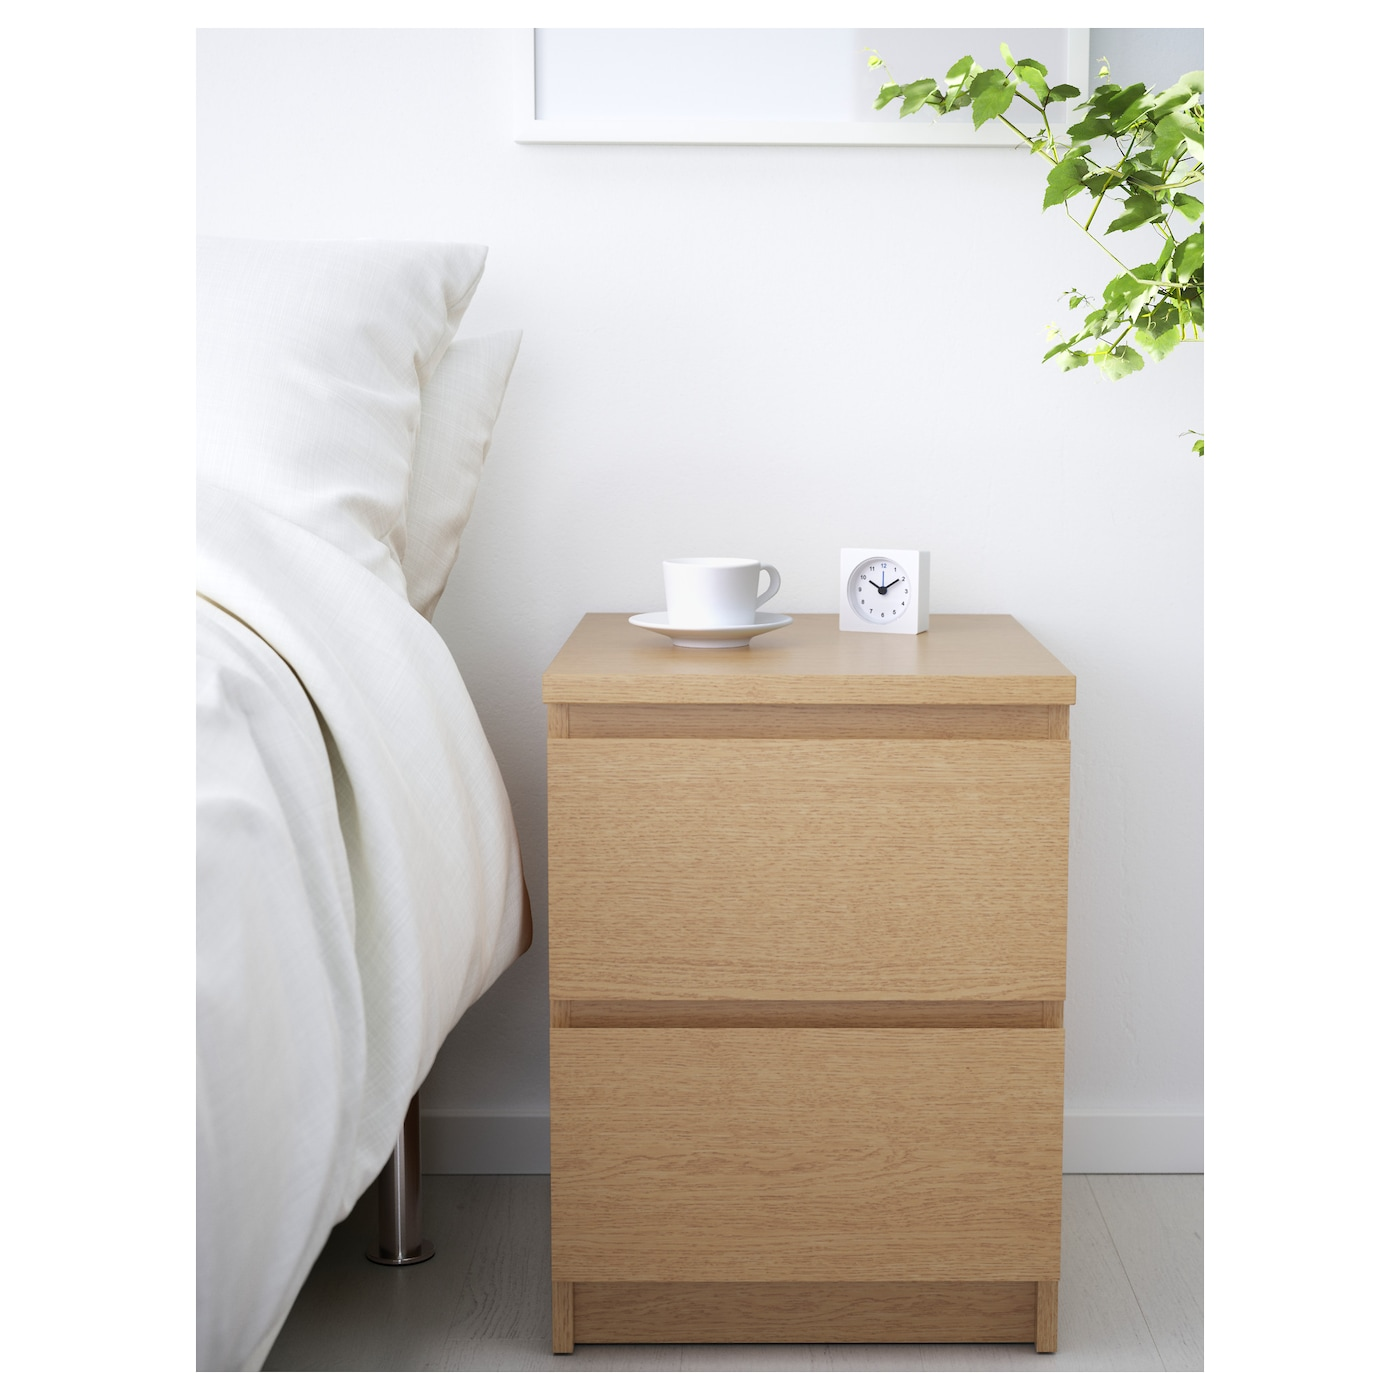 malm chest of 2 drawers oak veneer 40 x 55 cm ikea. Black Bedroom Furniture Sets. Home Design Ideas